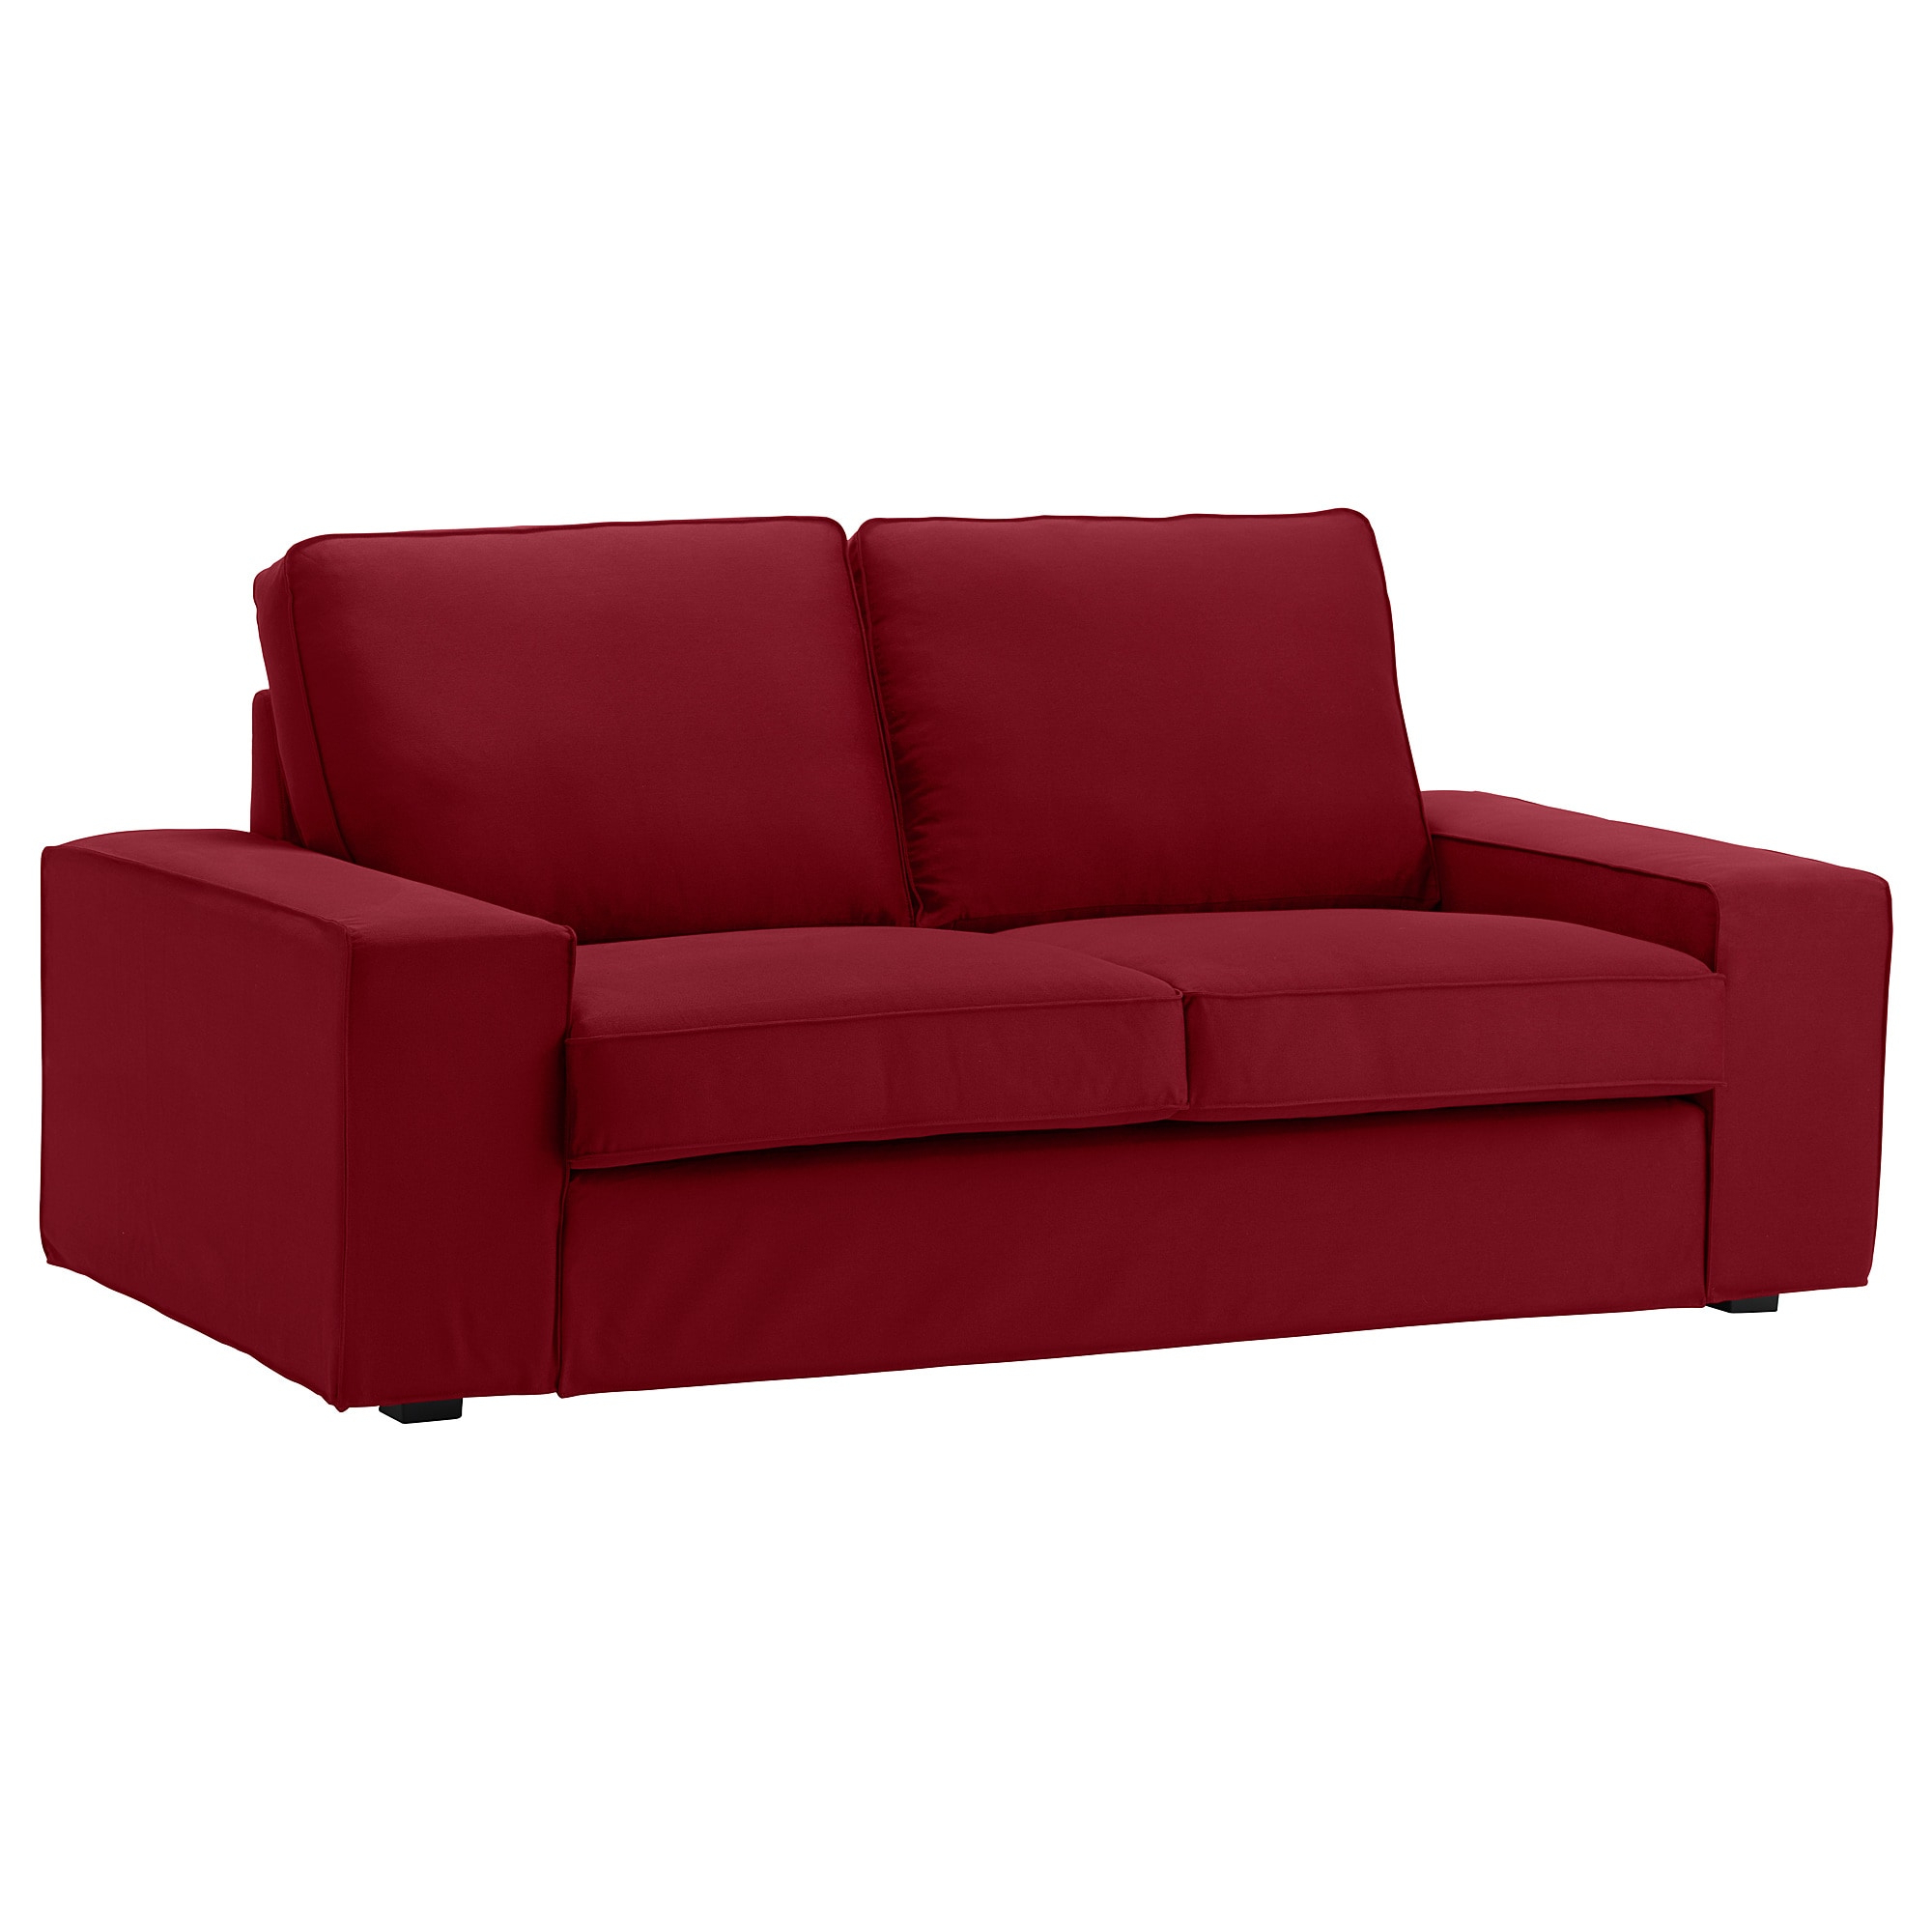 Ikea For Popular Red Sofas And Chairs (View 7 of 20)